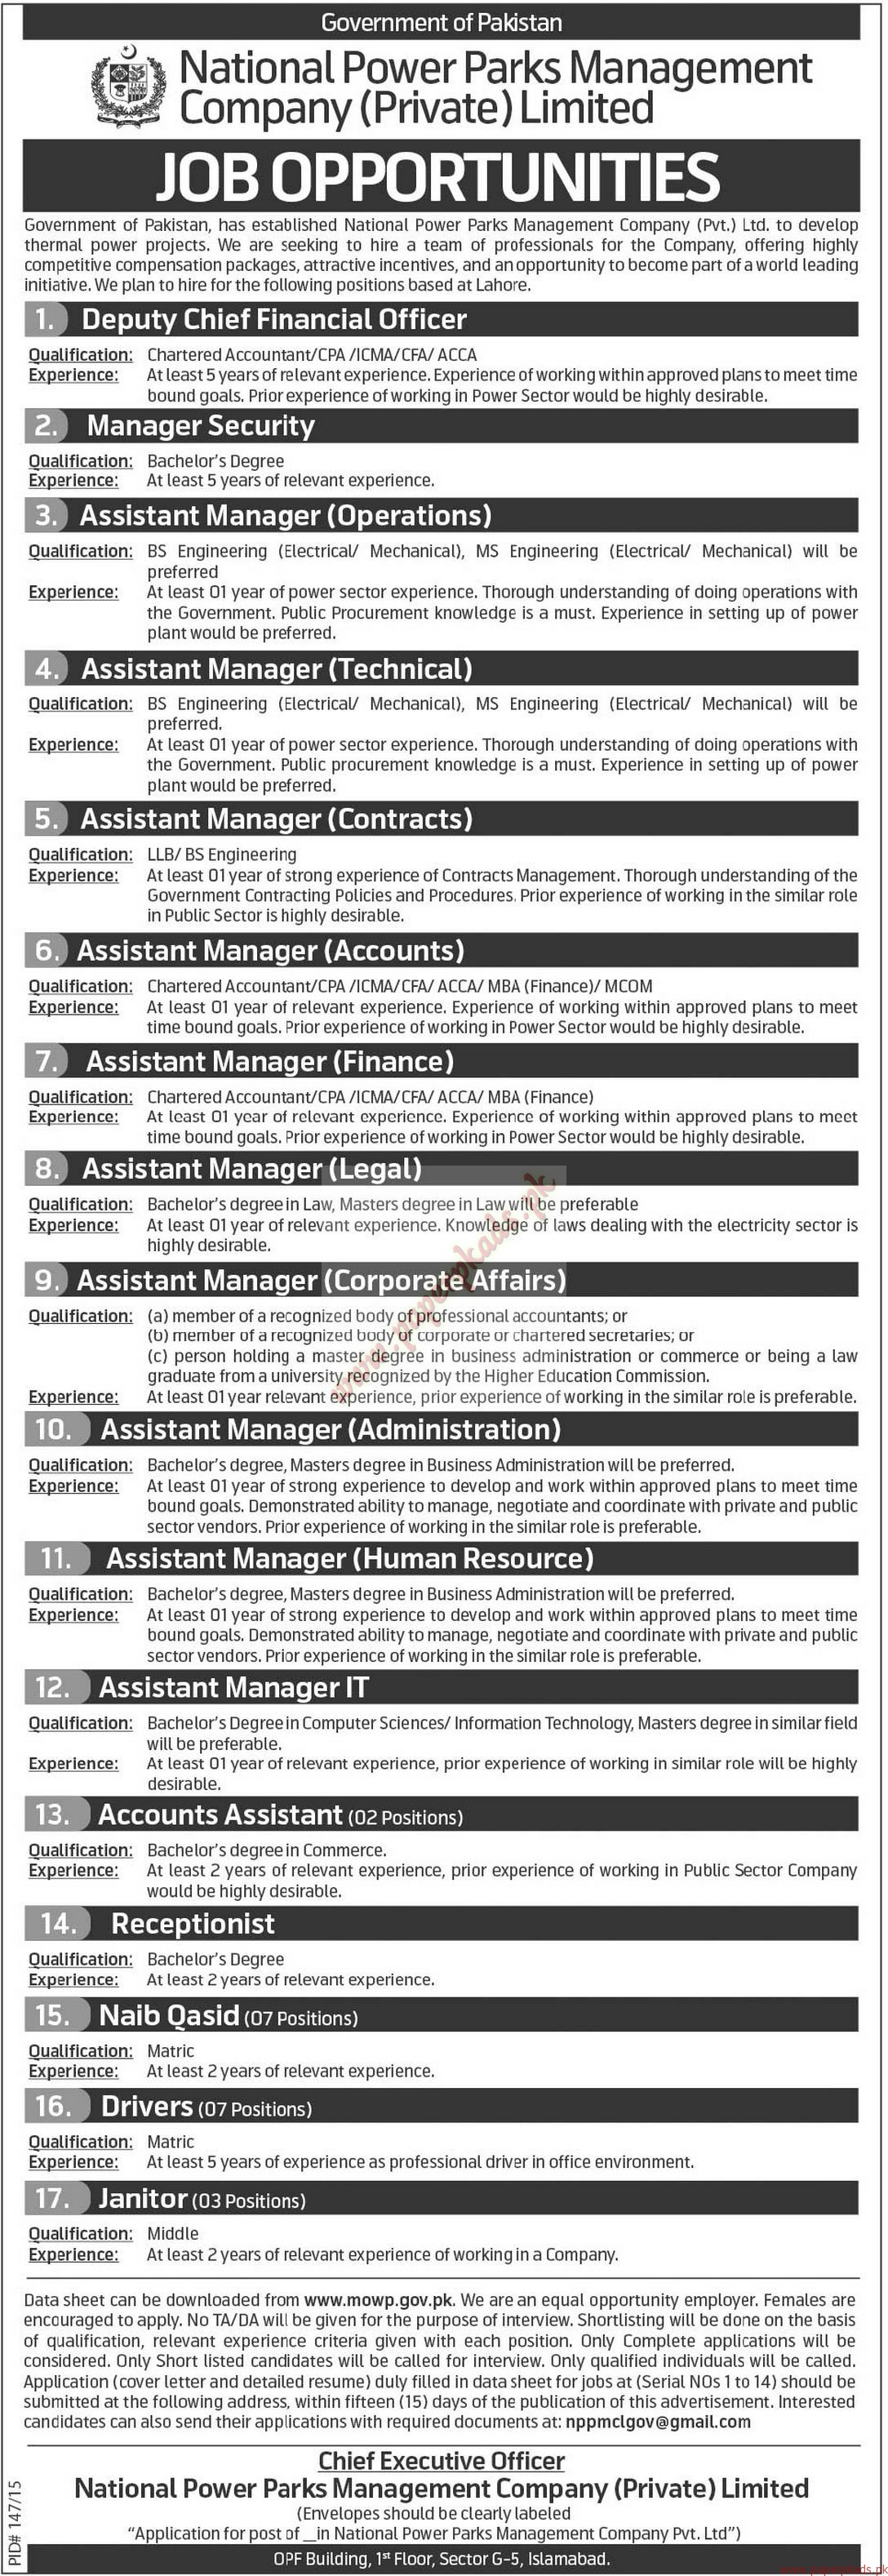 national power parks management company private limited jobs the national power parks management company private limited jobs the news jobs ads 10 2015